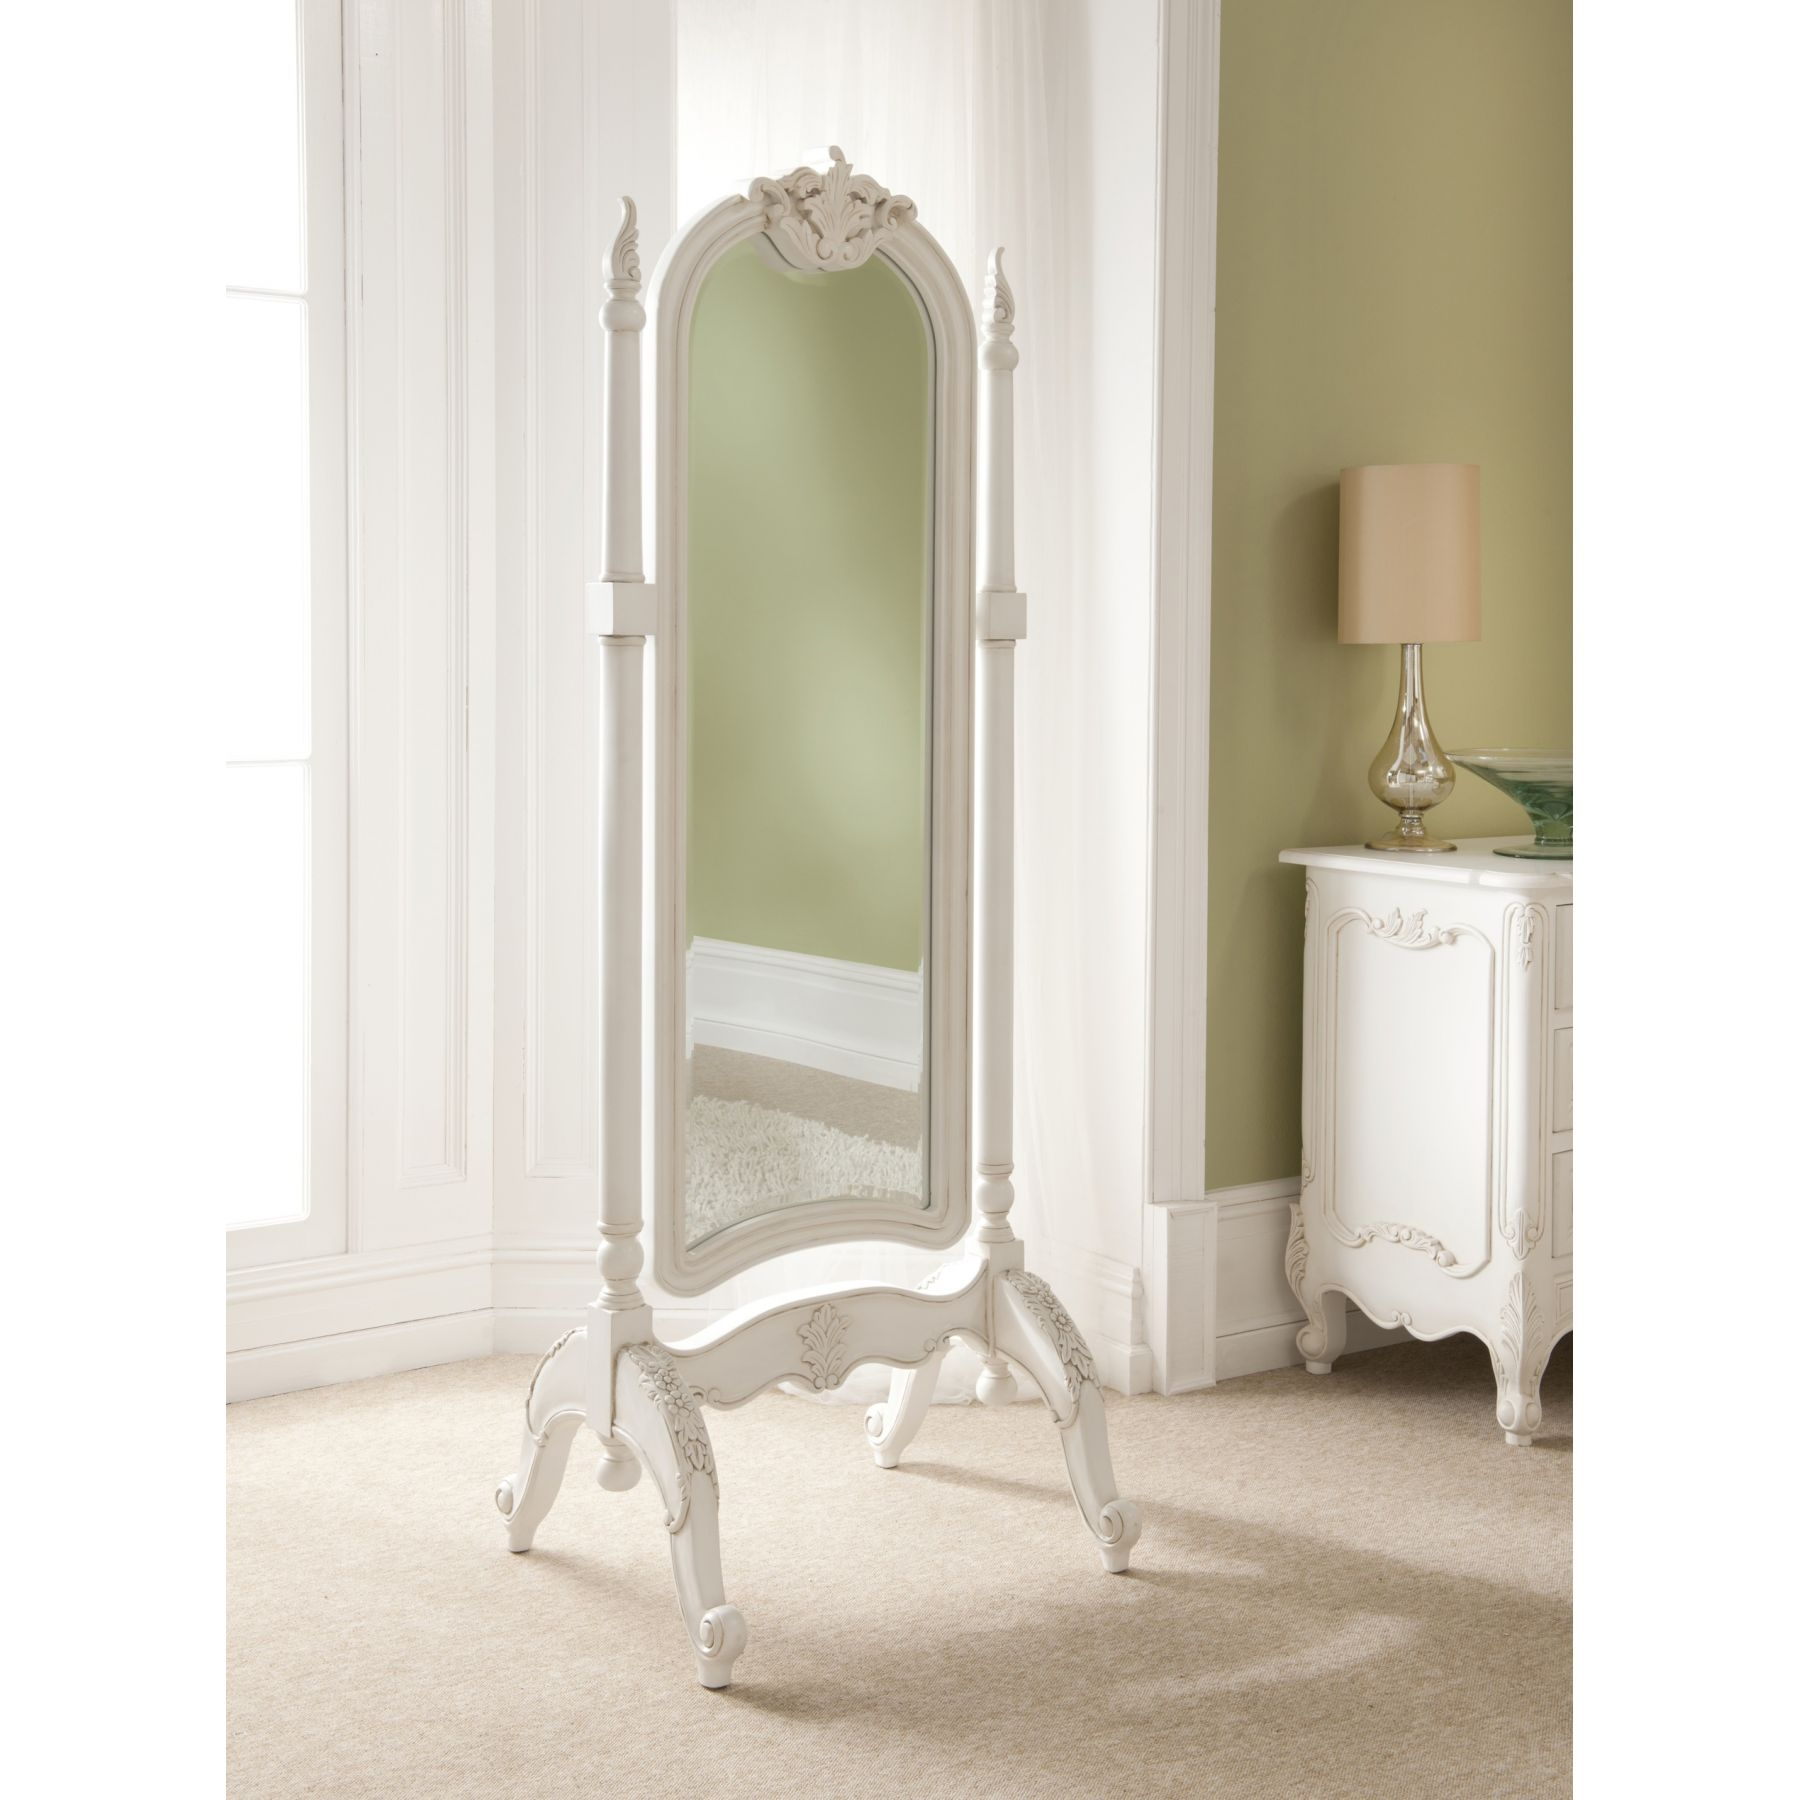 Cheval Mirror Cheval Mirror Pinterest Cheval Mirror In French Floor Standing Mirror (Image 10 of 15)